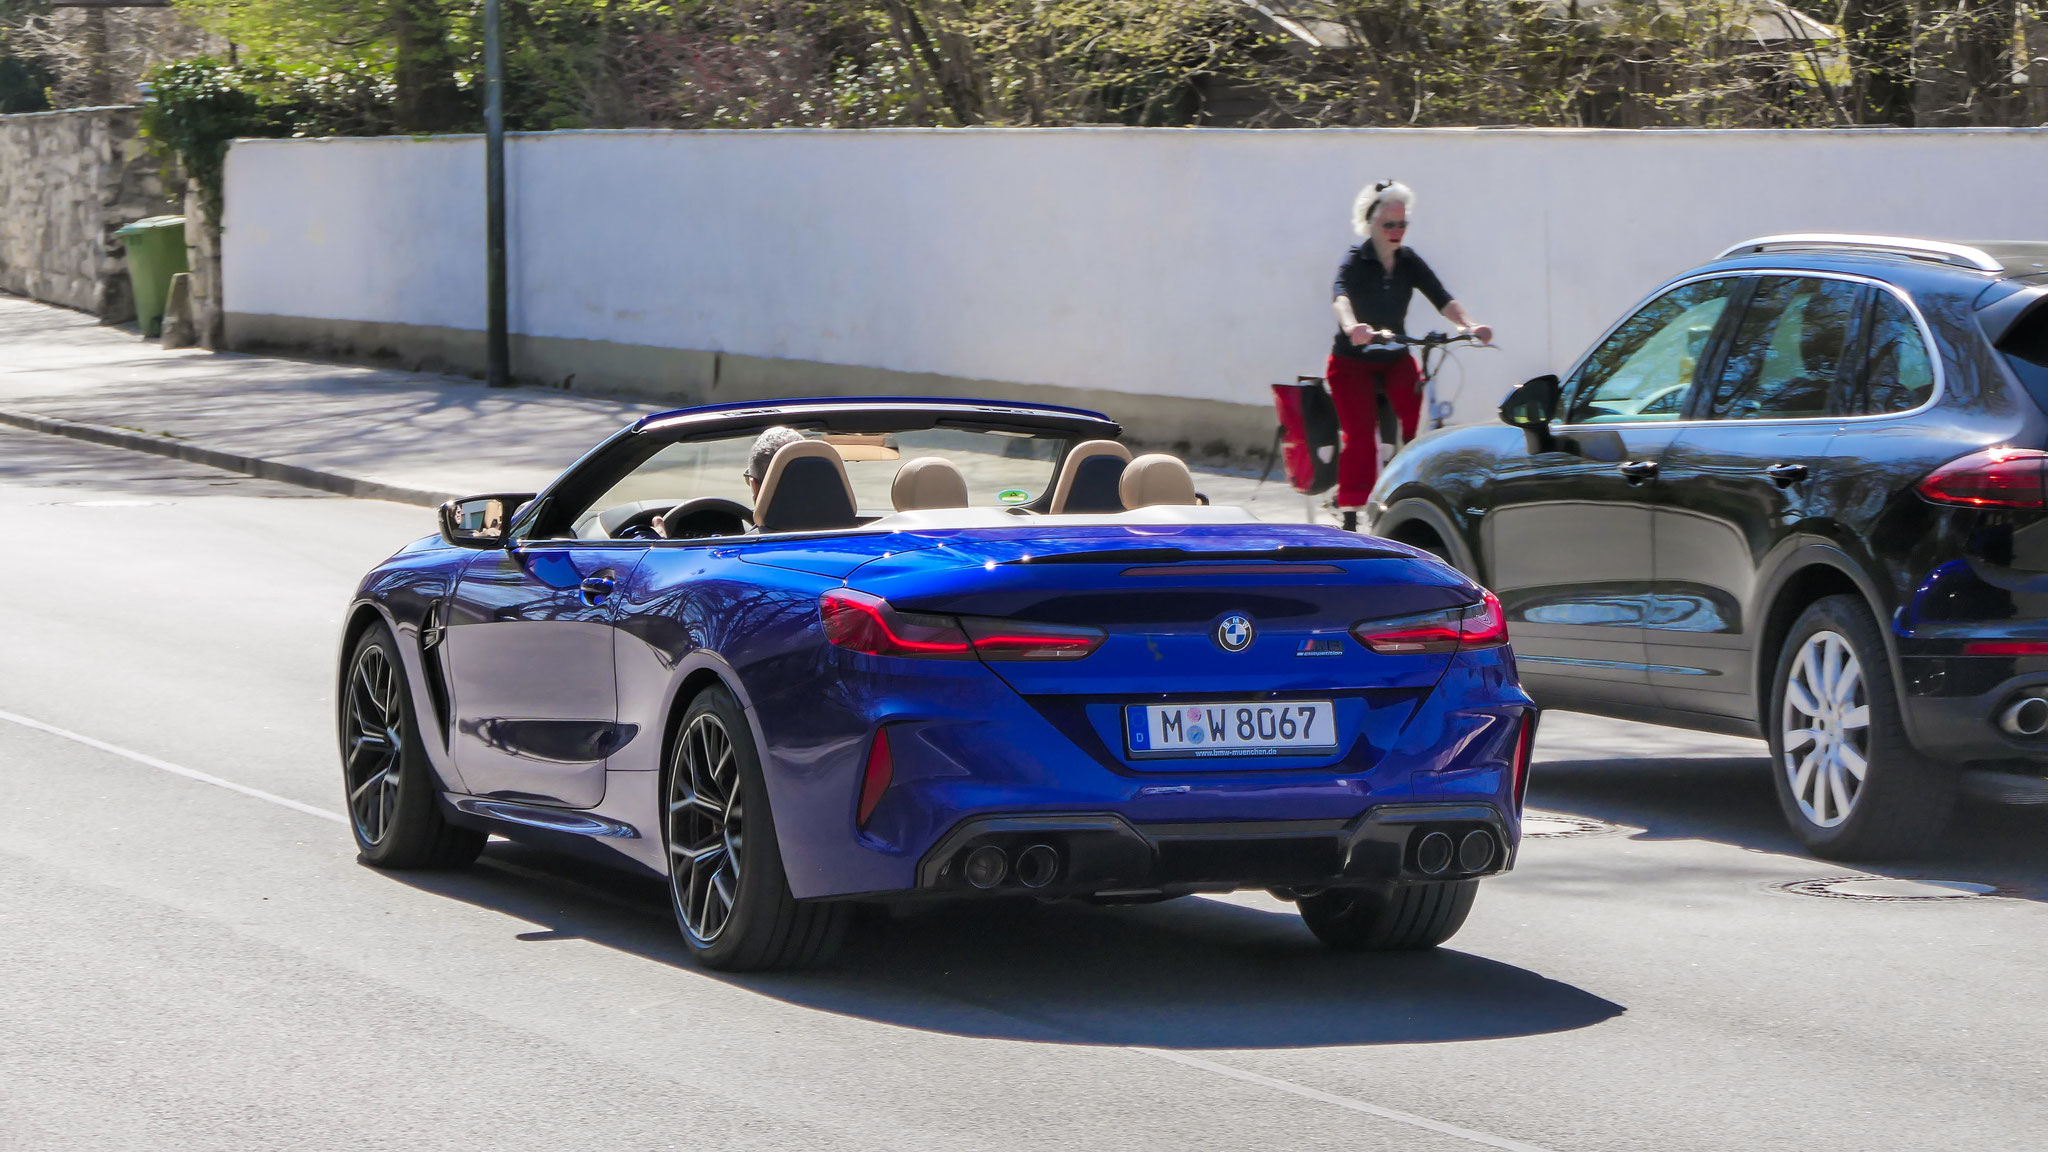 BMW M8 Competition Cabrio - M-W-8067